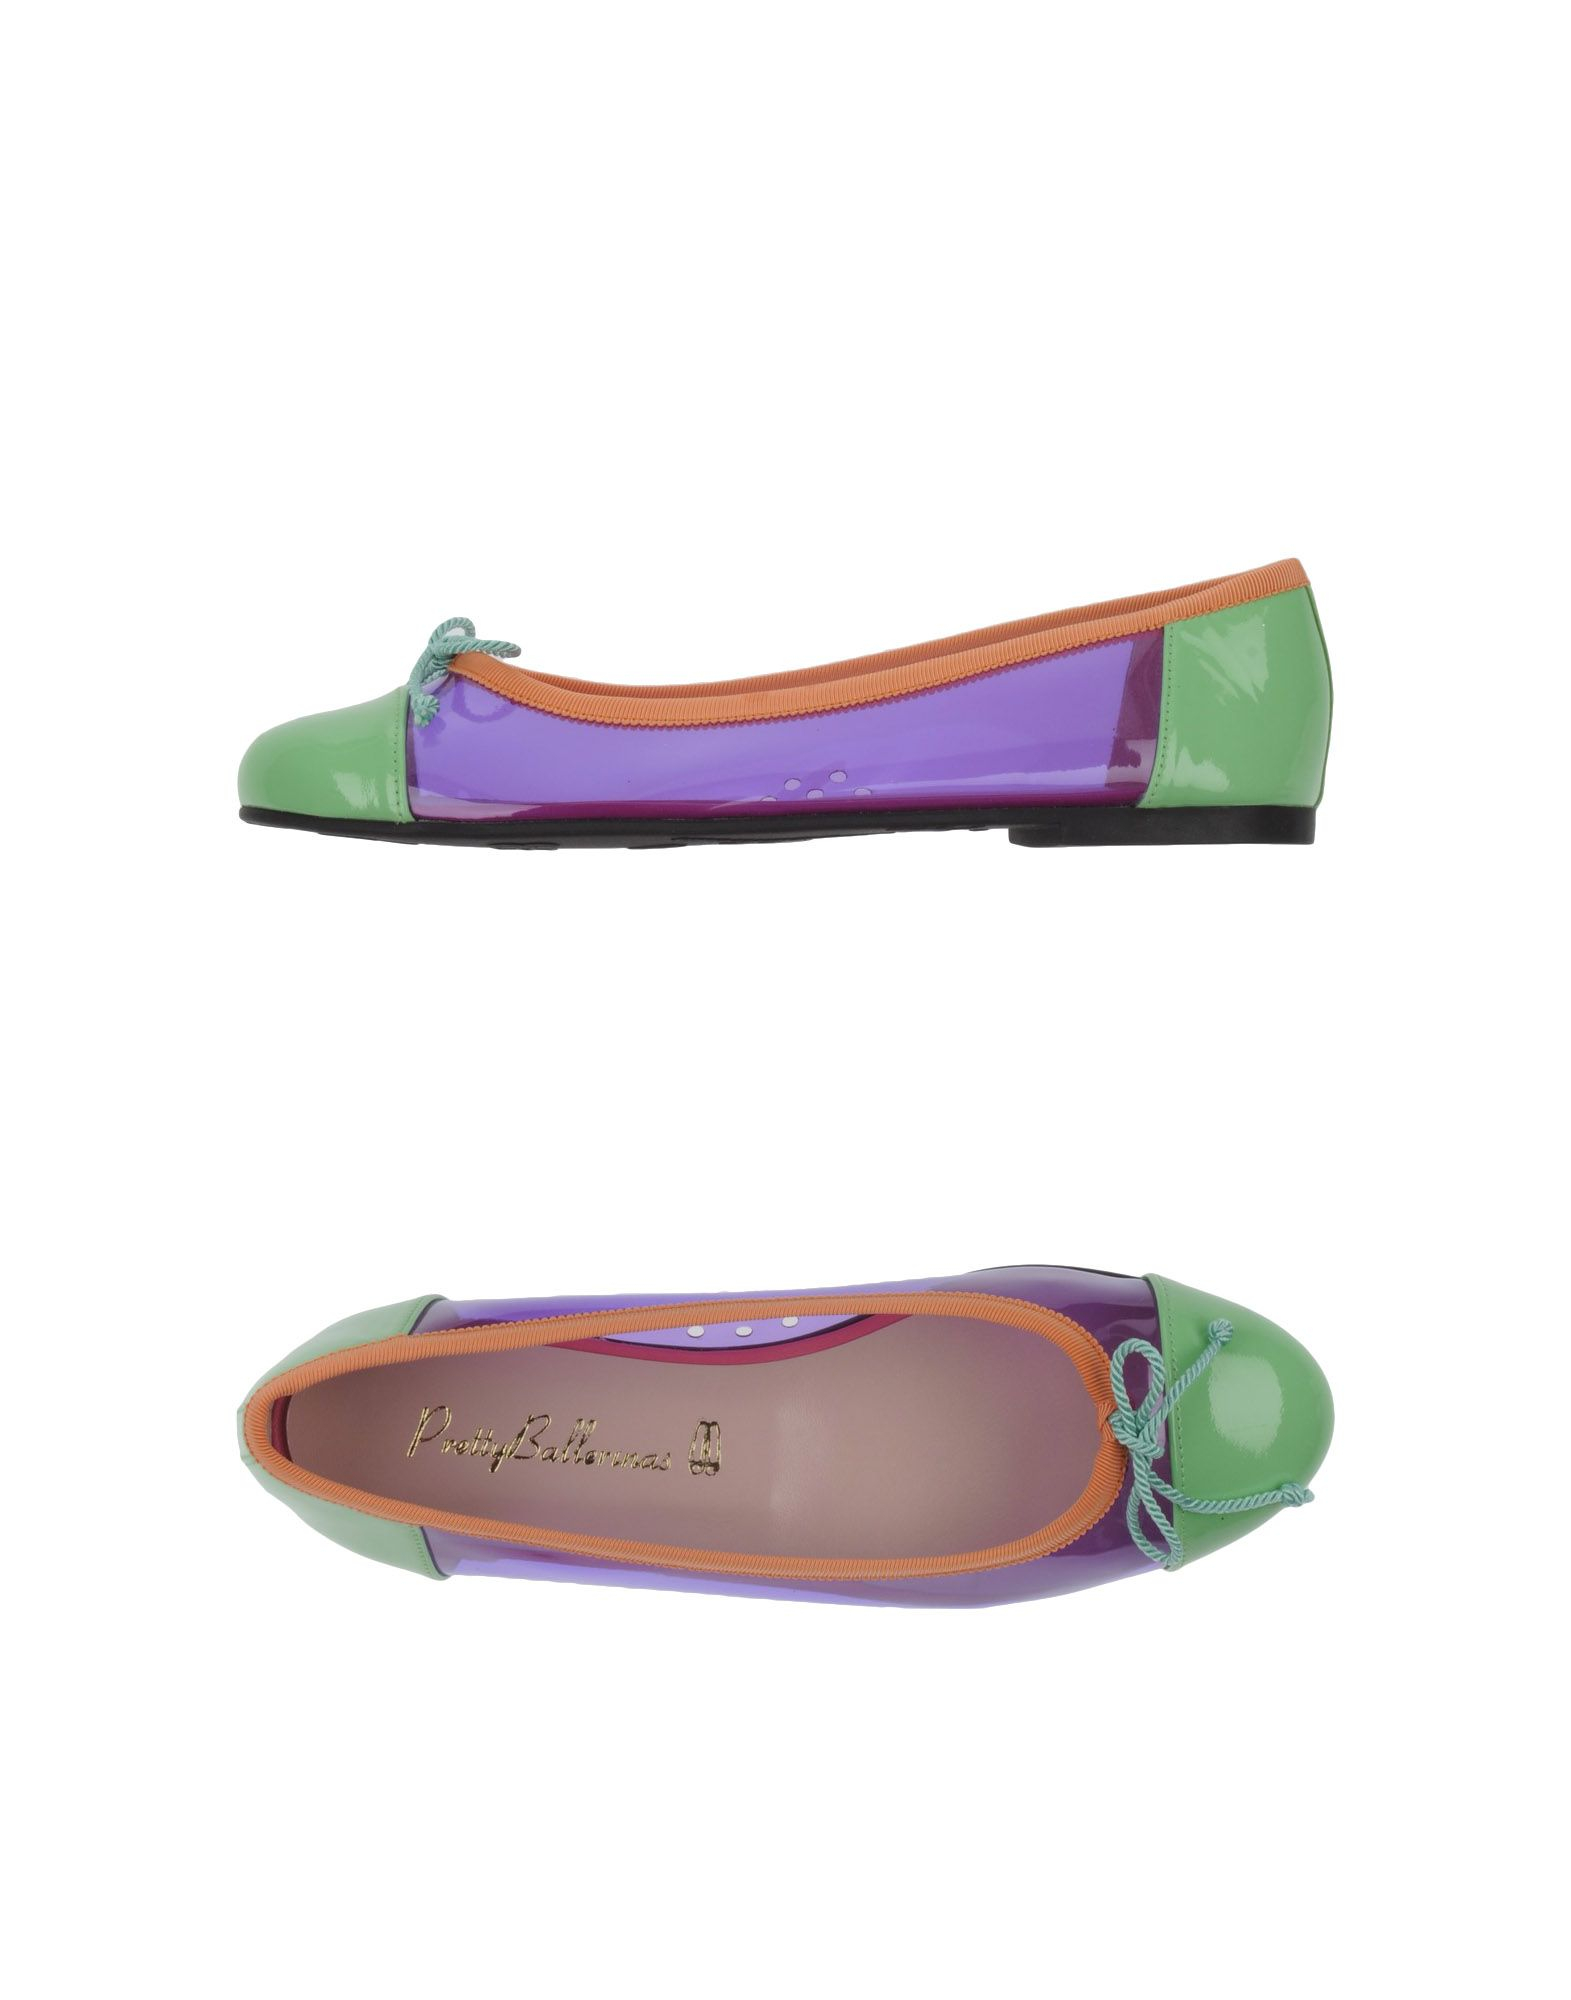 Shop women's sale ballet flats at hereaupy06.gq Cole Haan. FREE GROUND SHIPPING | $10 Flat Rate 2-DAY. Free Returns & Exchanges. FREE SHIPPING, RETURNS AND EXCHANGES Show navigation. Purple Orange Gold Silver Style Ballet Flats Collection hereaupy06.gqØGRAND GrandRevølution.